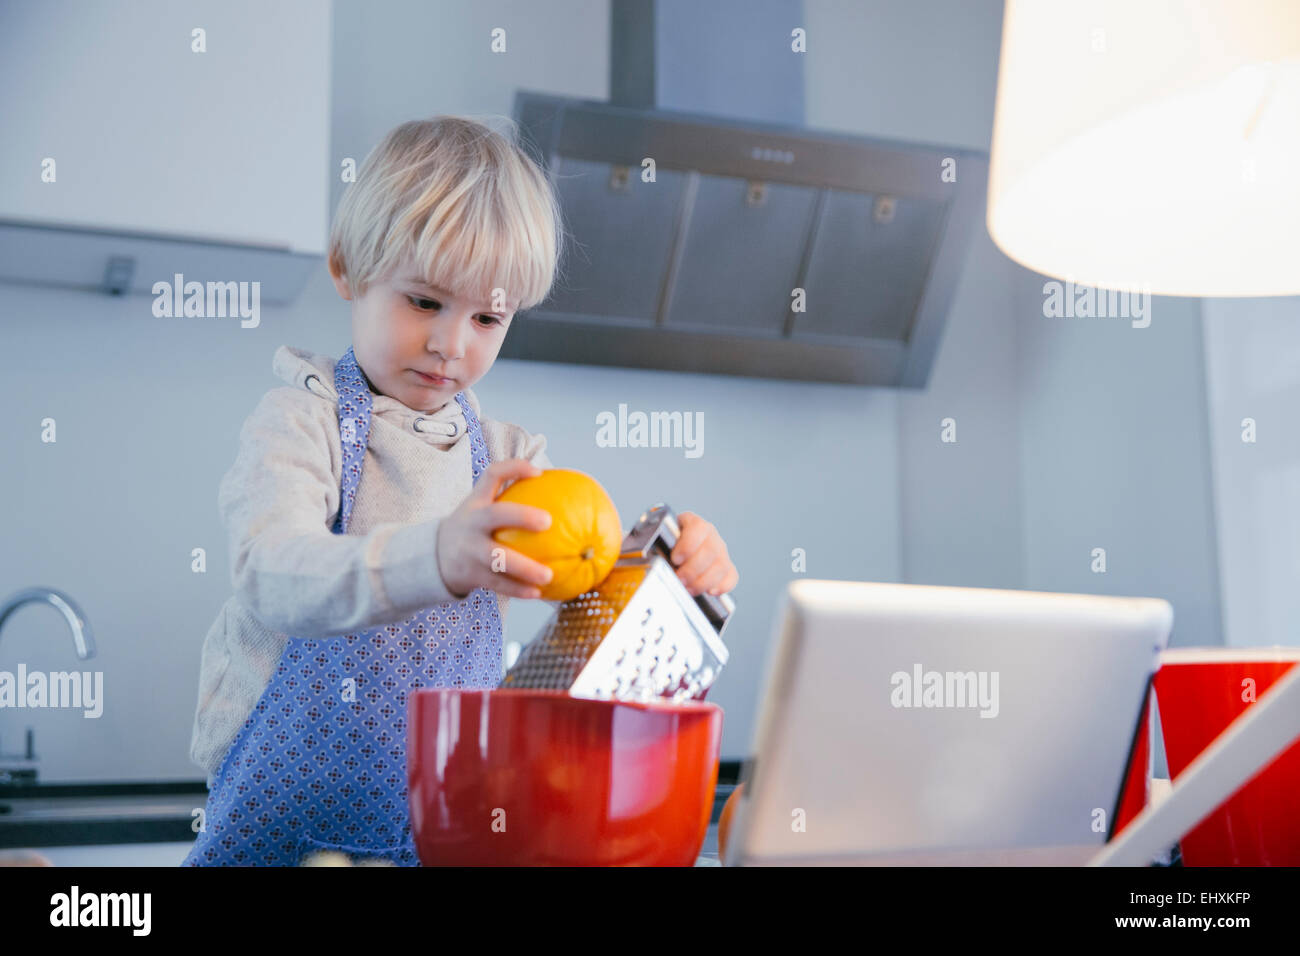 Little boy standing in the kitchen baking with help of digital tablet - Stock Image